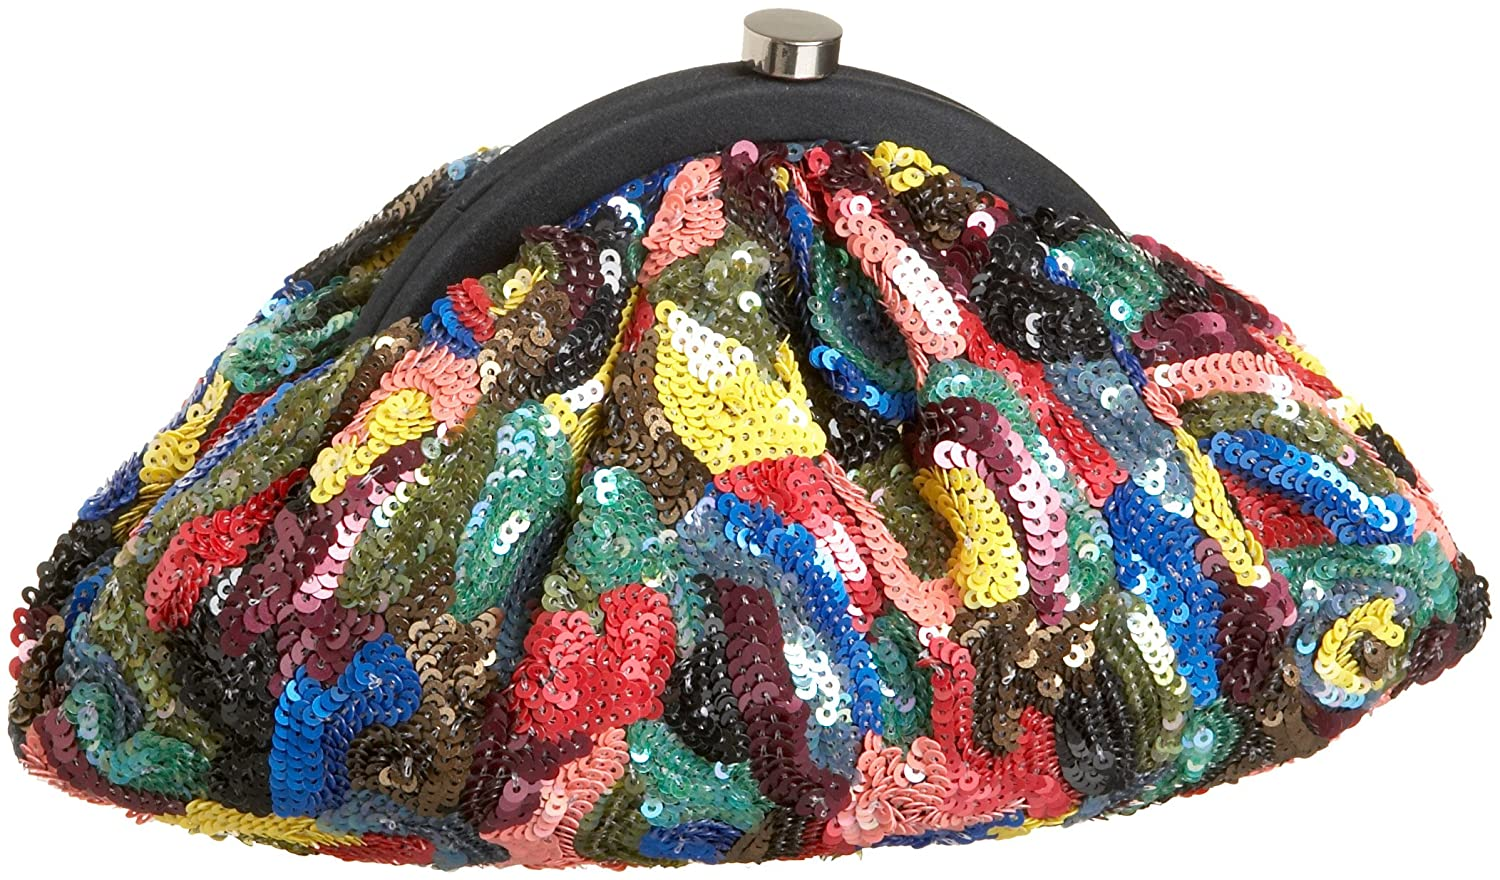 SANTI CPM4338 Clutch - Free Overnight Shipping & Return Shipping: Endless.com :  sequin clutch clutch santi bag